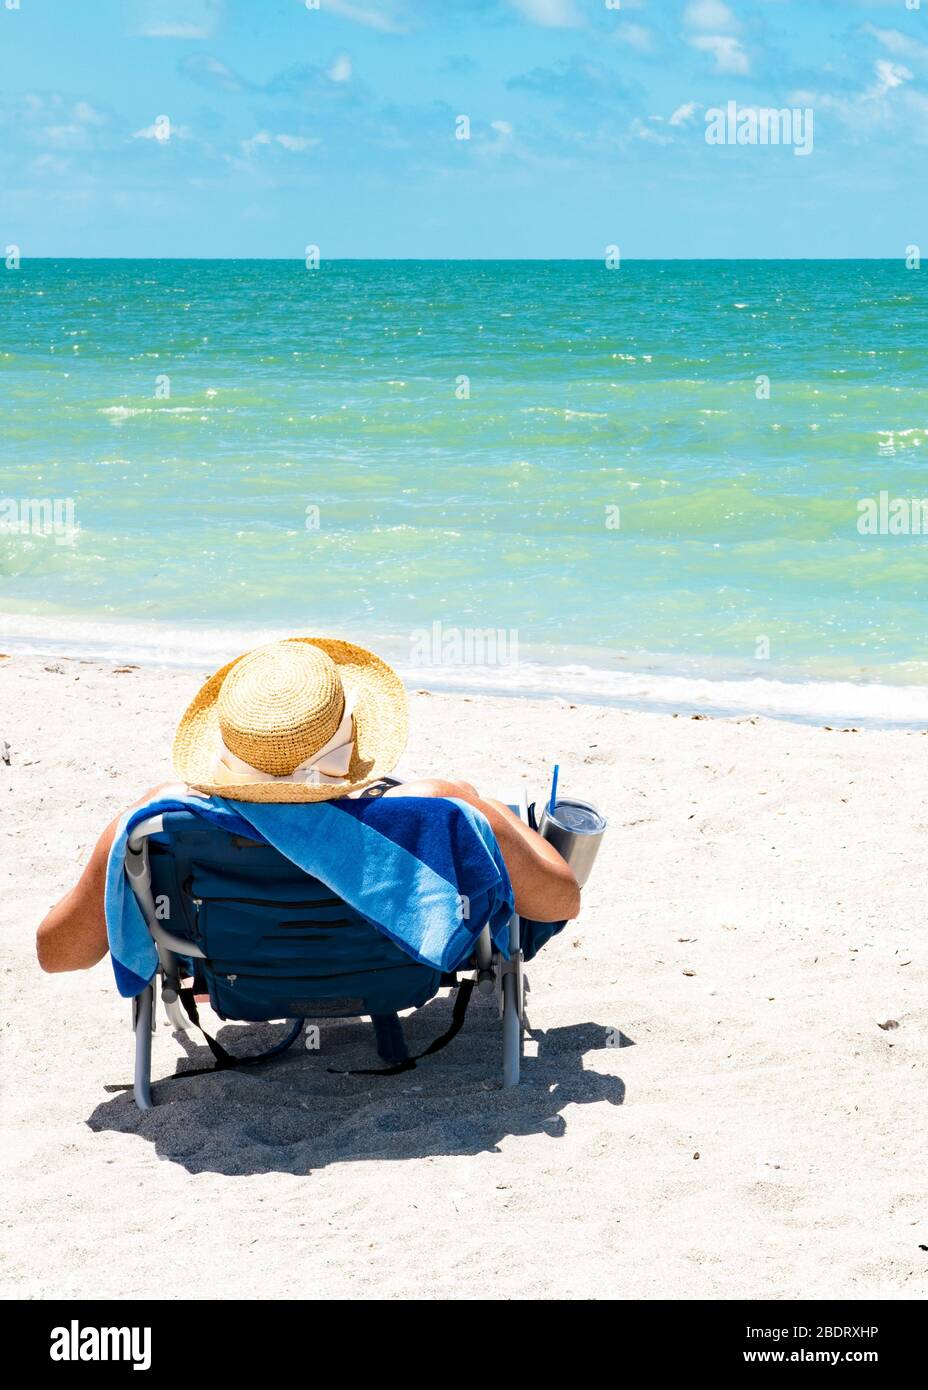 Person Sitting In A Lounge Chair On The Beach Looking Out At The Ocean Person Is Wearing A Hat Person Is Unrecognizable Stock Photo Alamy